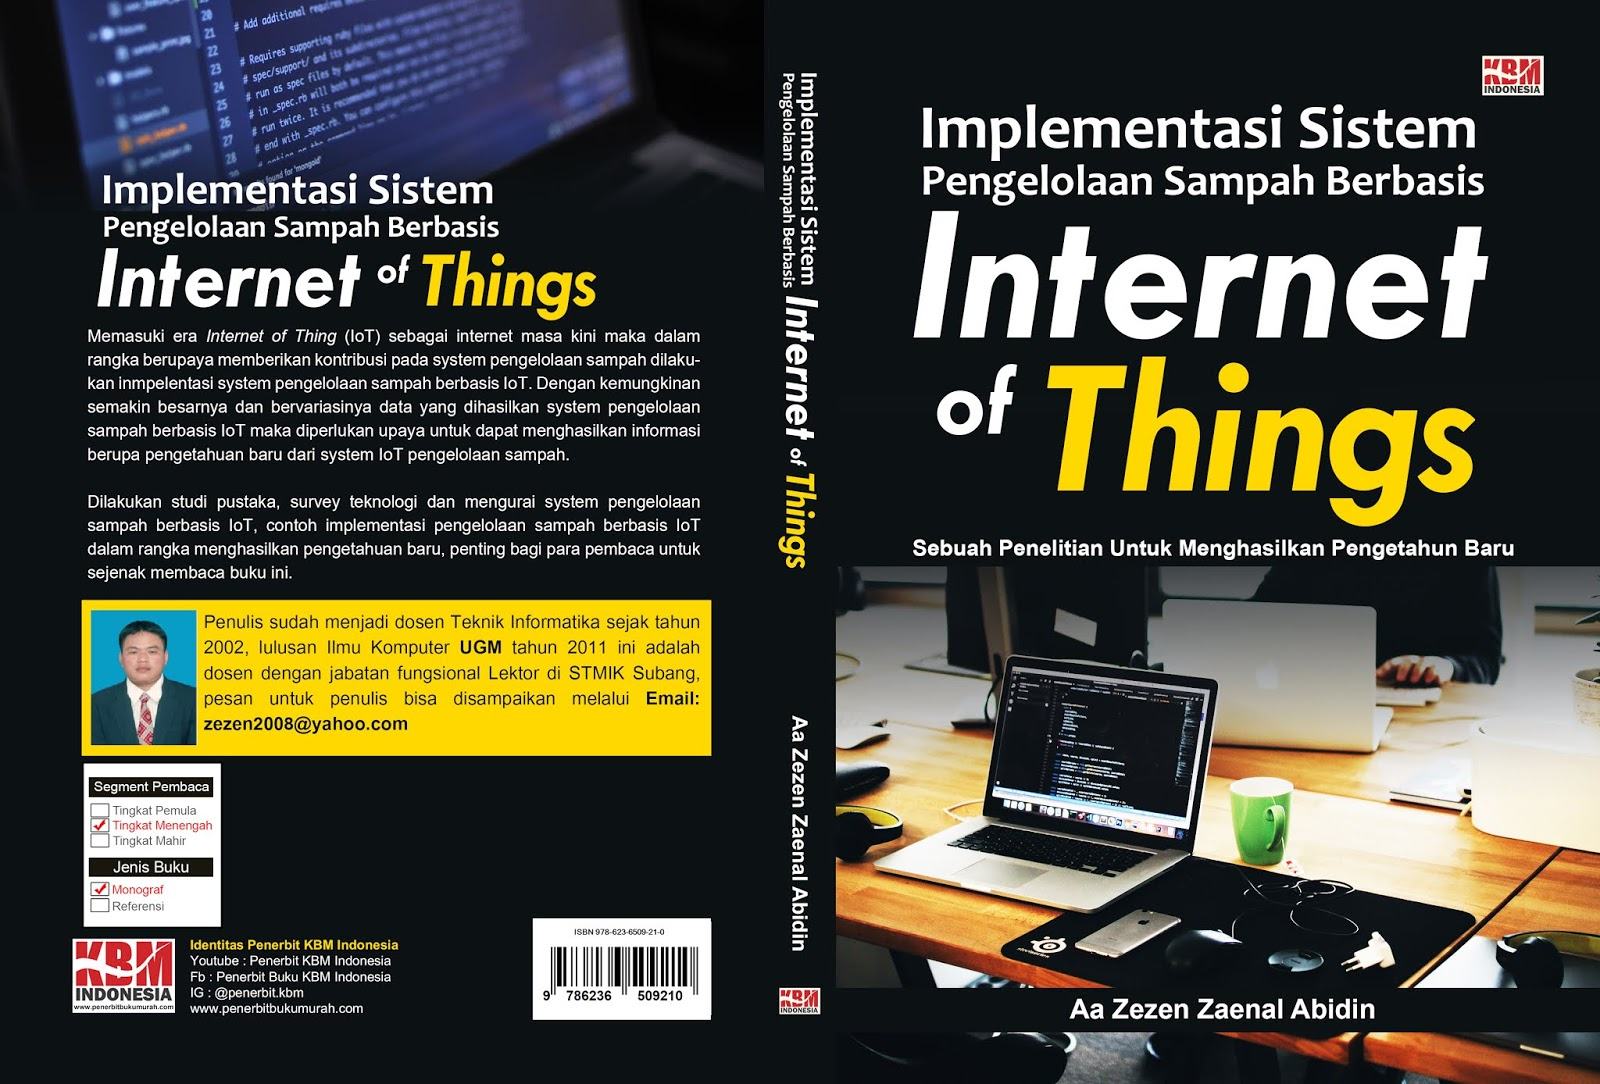 IMPLEMENTASI SISTEM PENGELOLAAN SAMPAH BERBASIS INTERNET OF THINGS